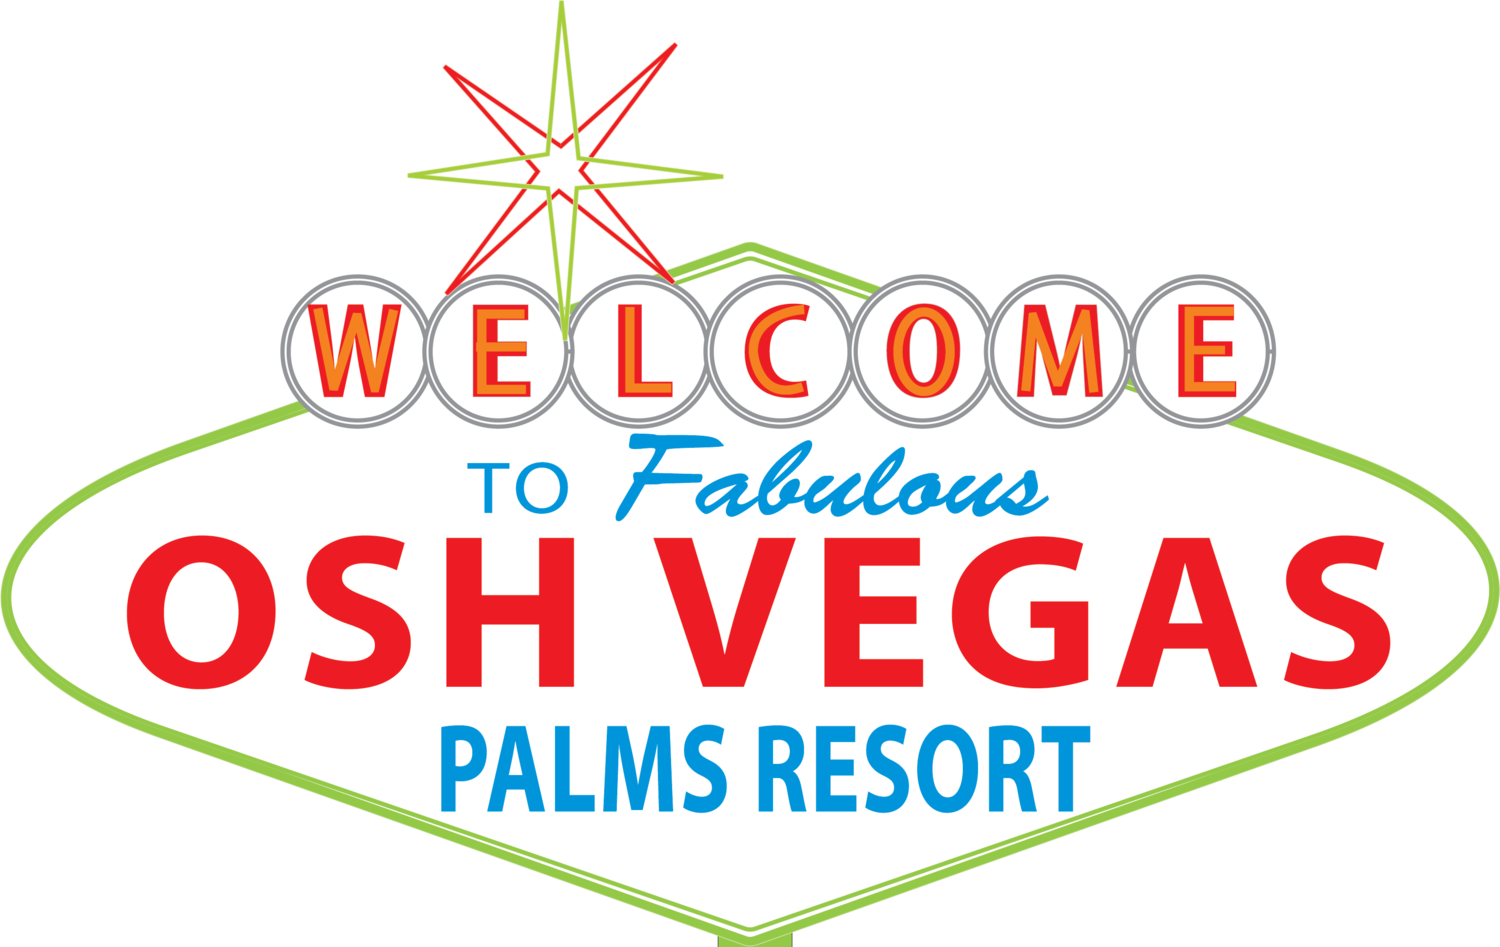 OSHVEGAS PALMS RESORT